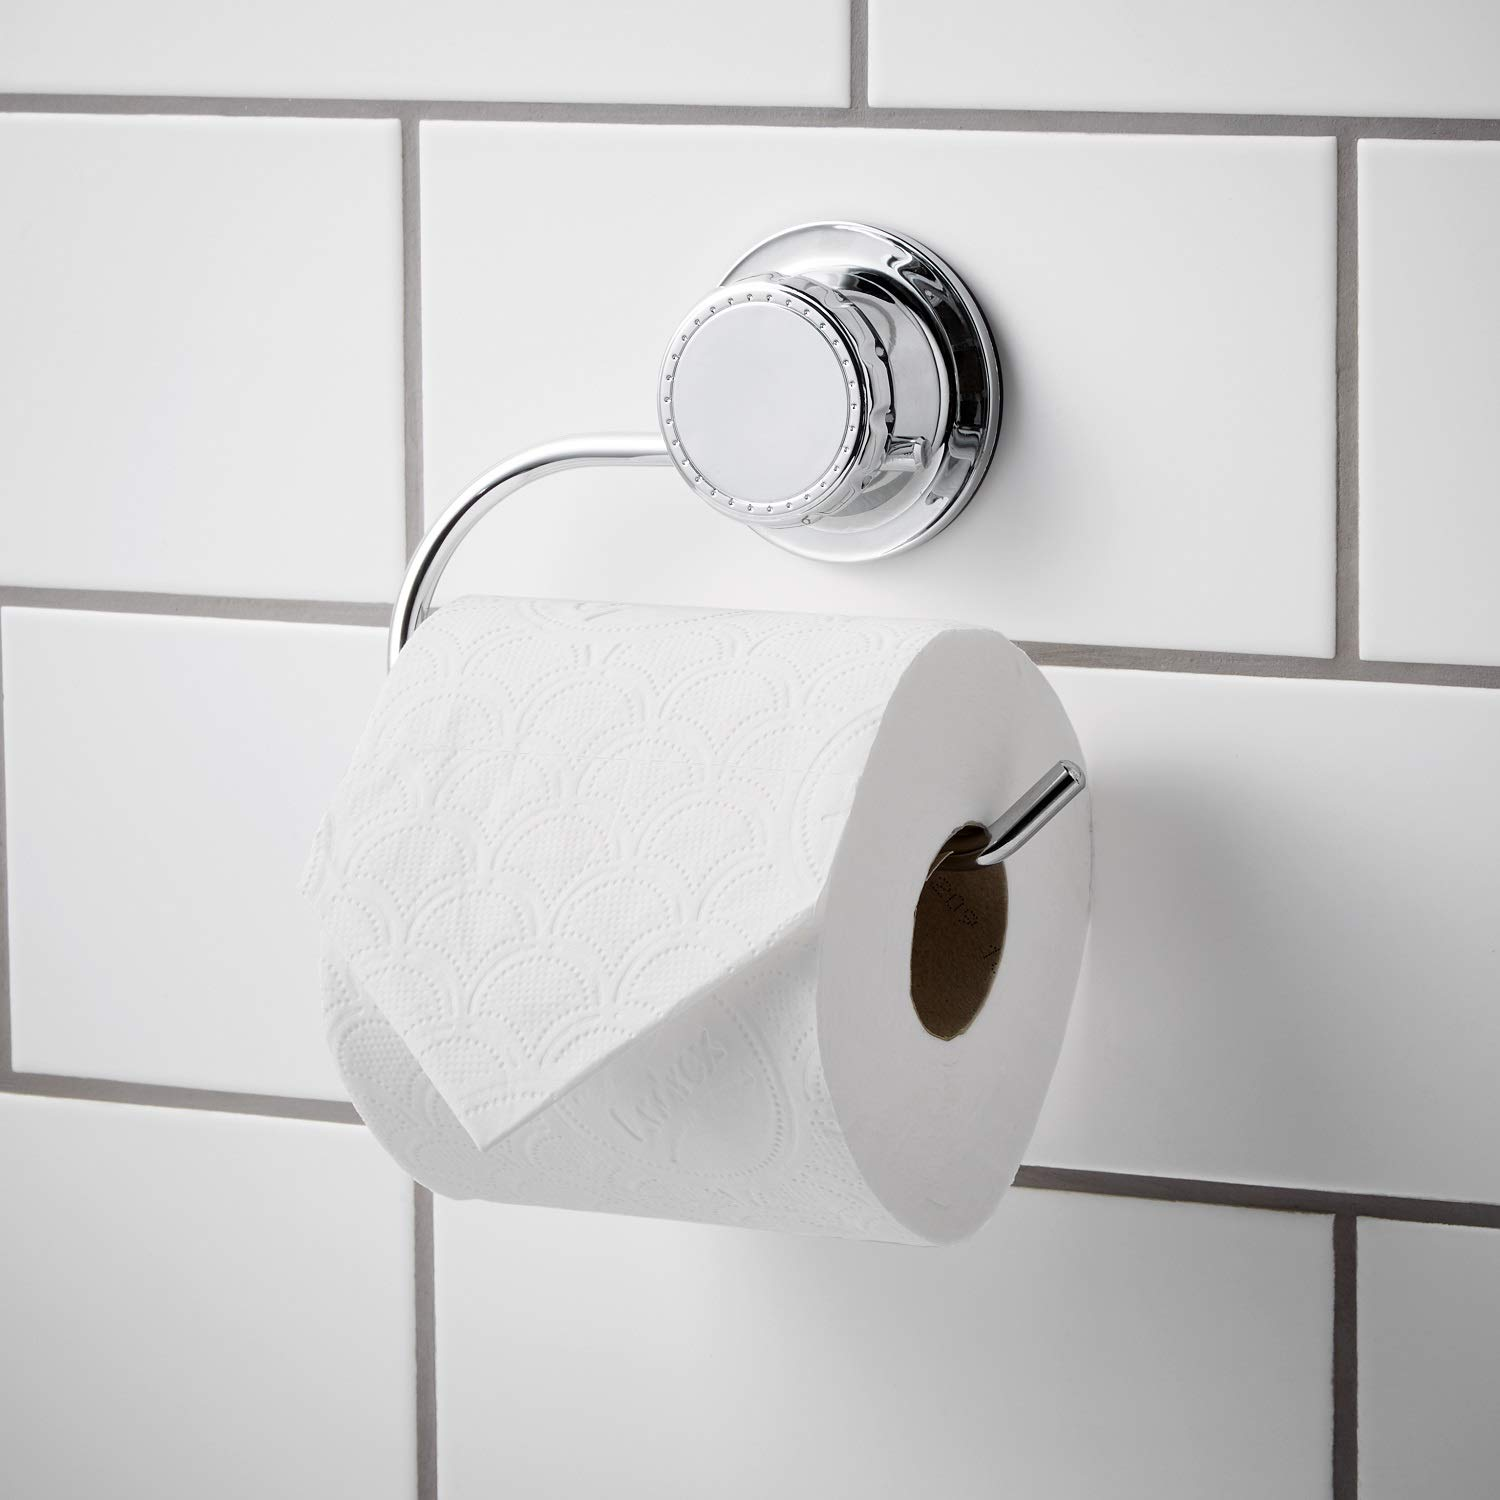 Bloomsbury Mill - Extra Strong Suction Cup Toilet Roll Holder - Bathroom Tissue Dispenser - Anti-Rust - Chrome